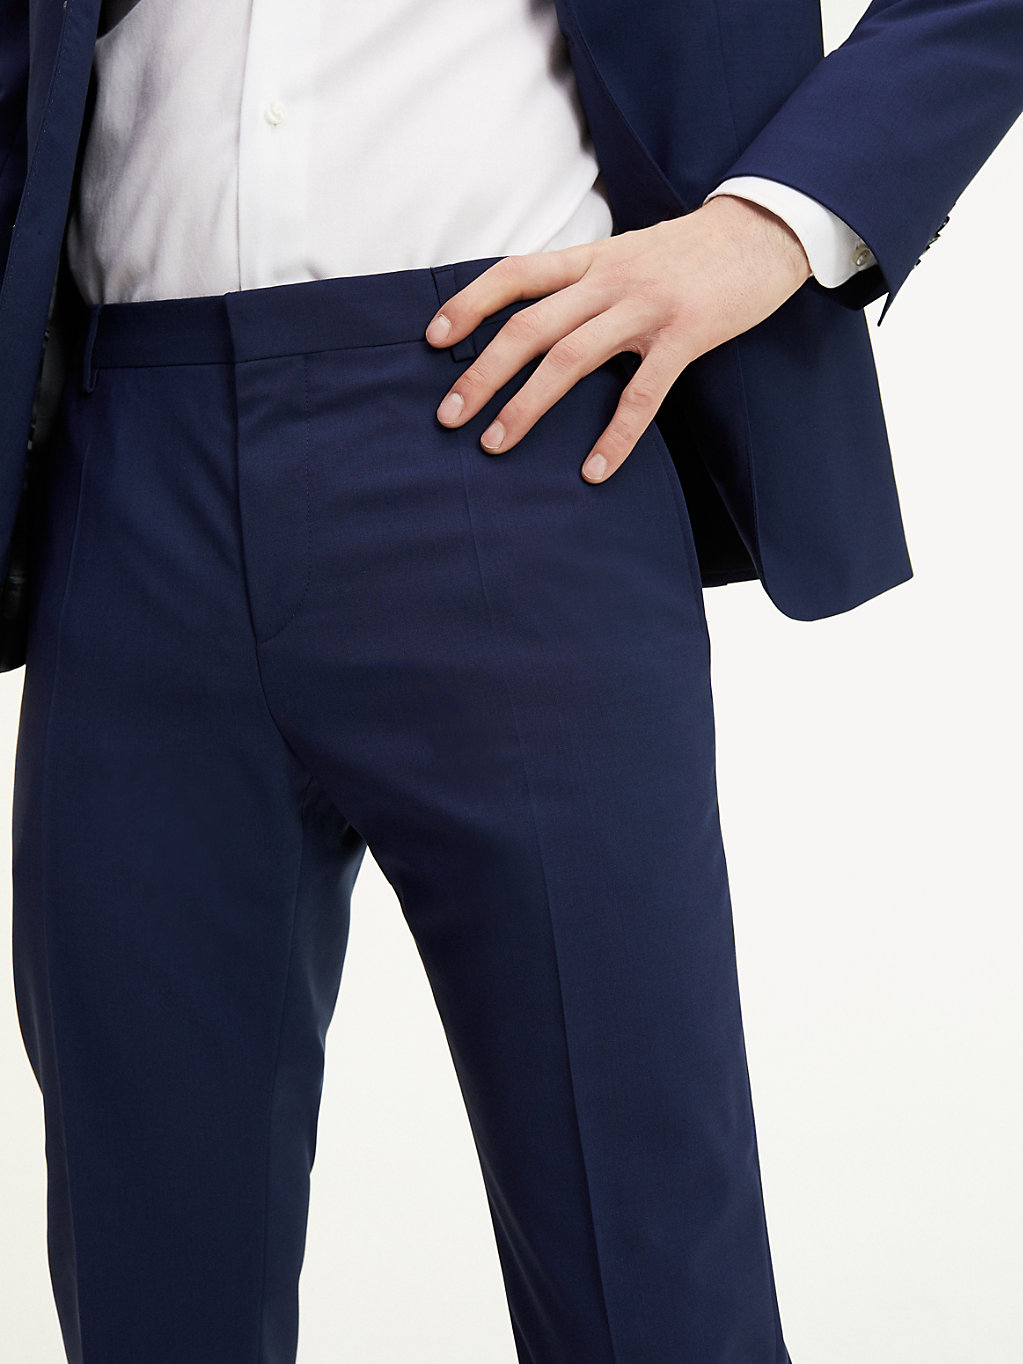 Tommy Hilfiger - Suit Separate Regular Fit Trousers - 4